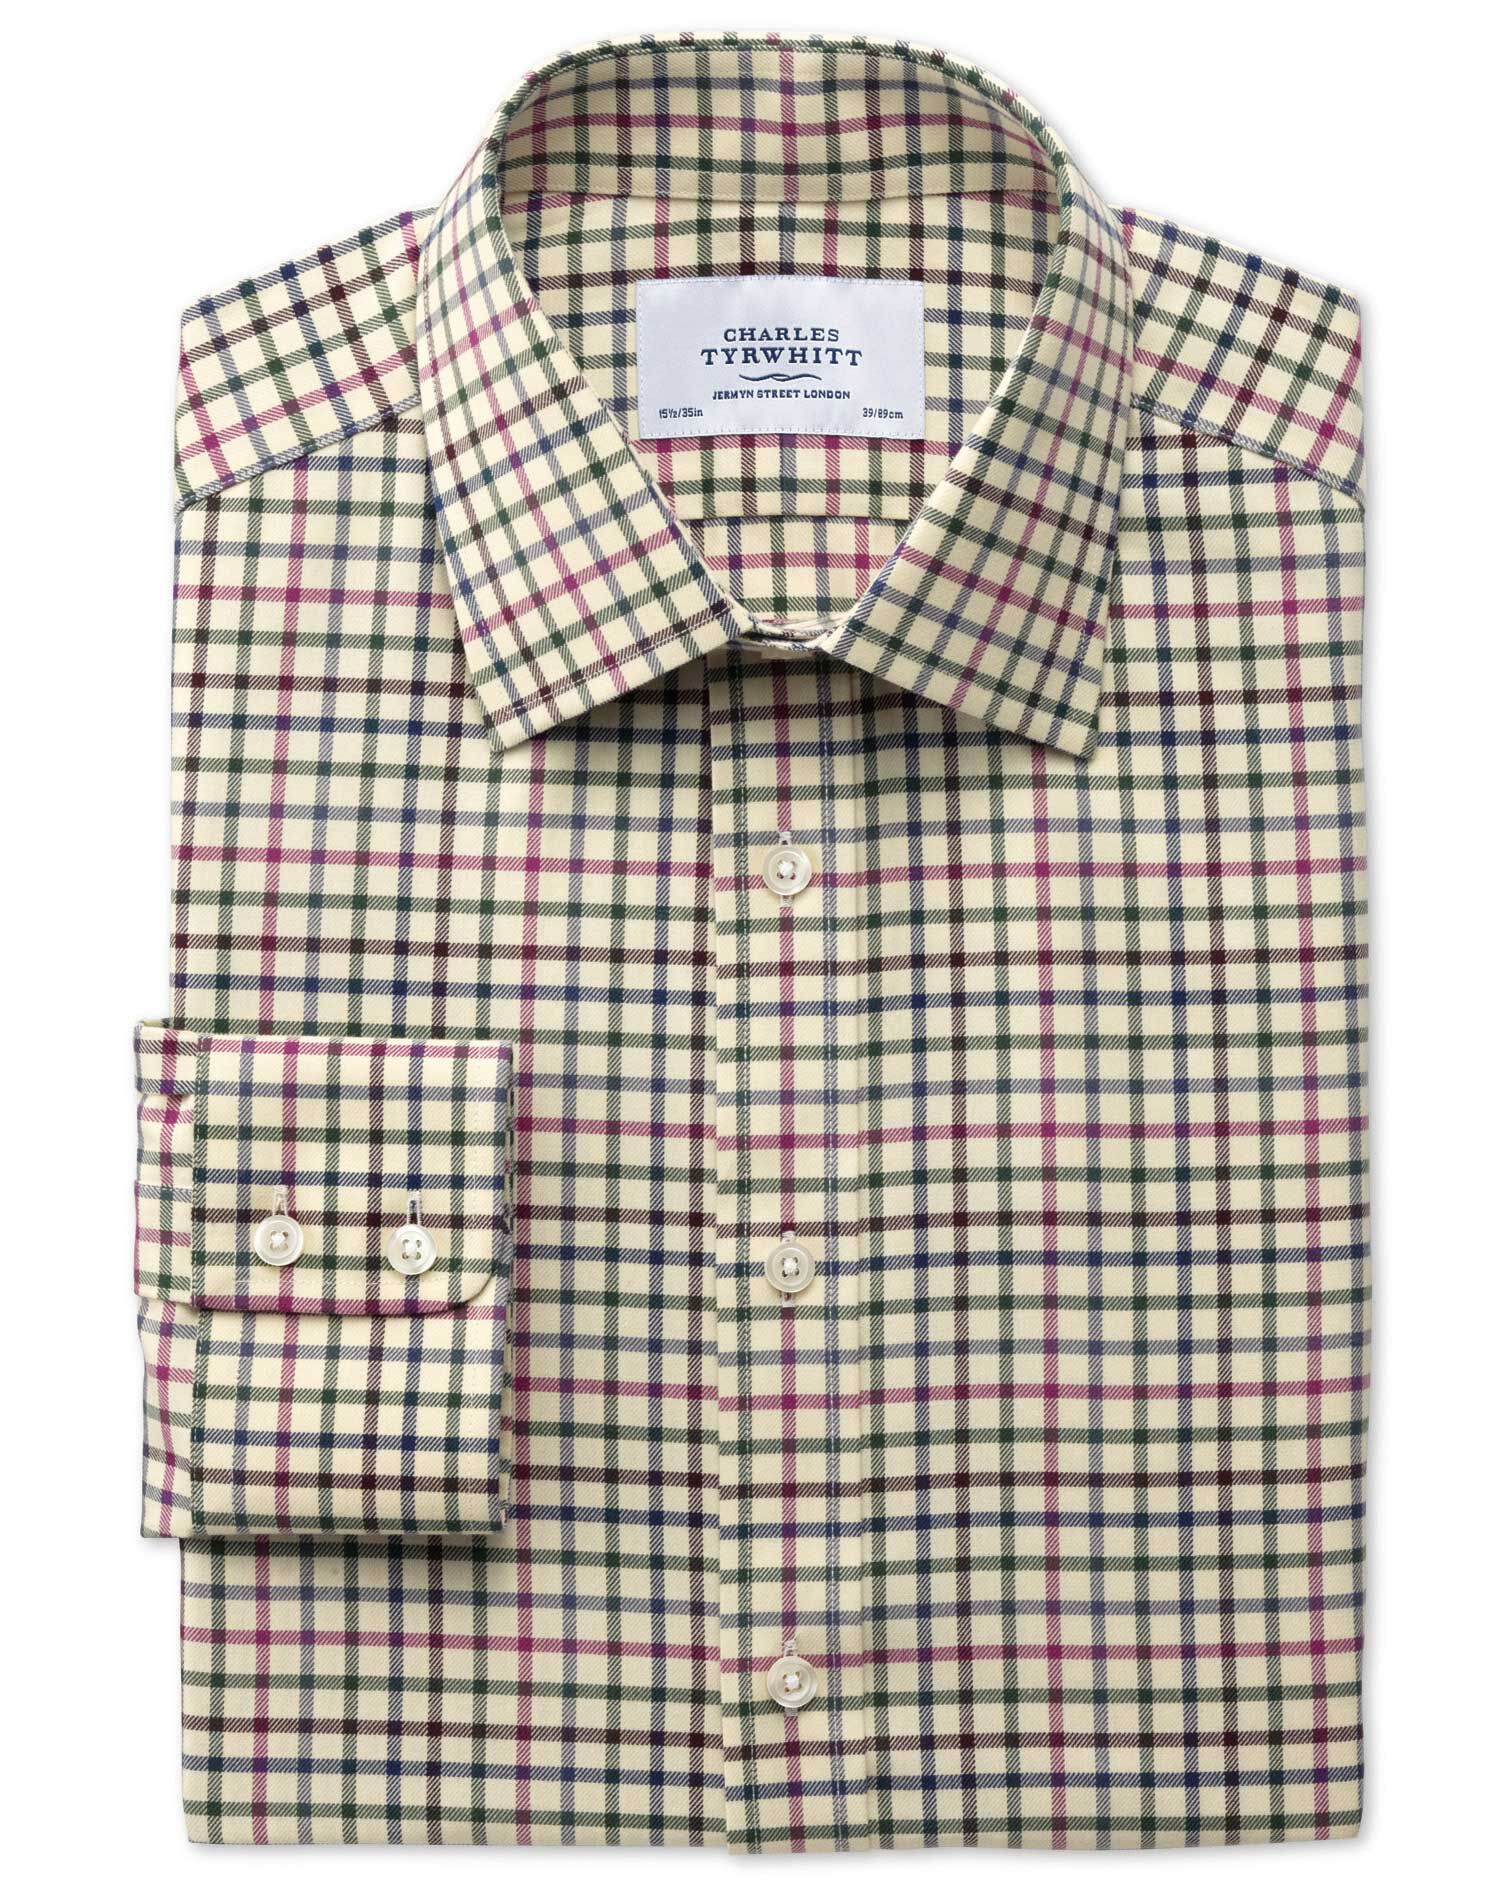 Slim Fit Country Check Pink and Green Cotton Formal Shirt Single Cuff Size 17/35 by Charles Tyrwhitt